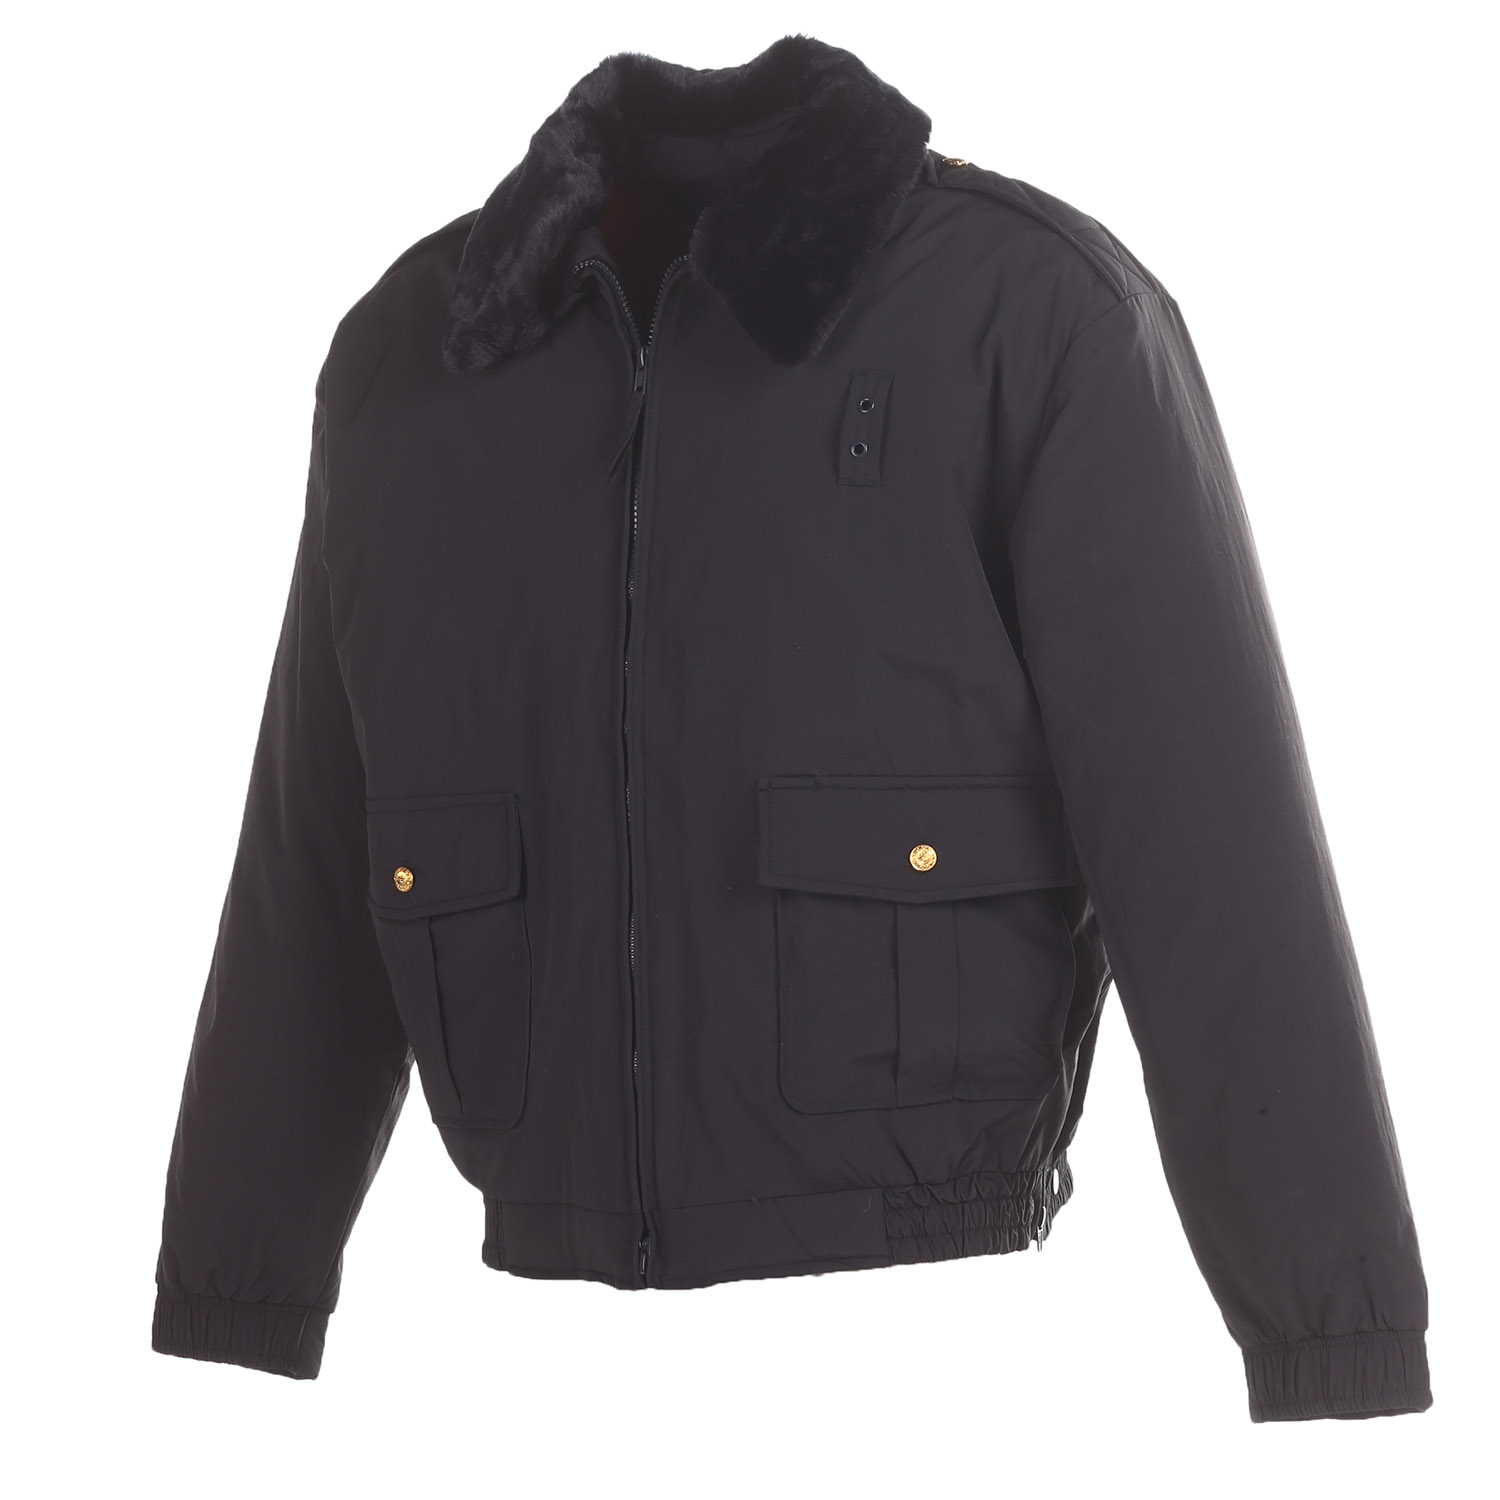 LawPro All Seasons Duty Jacket